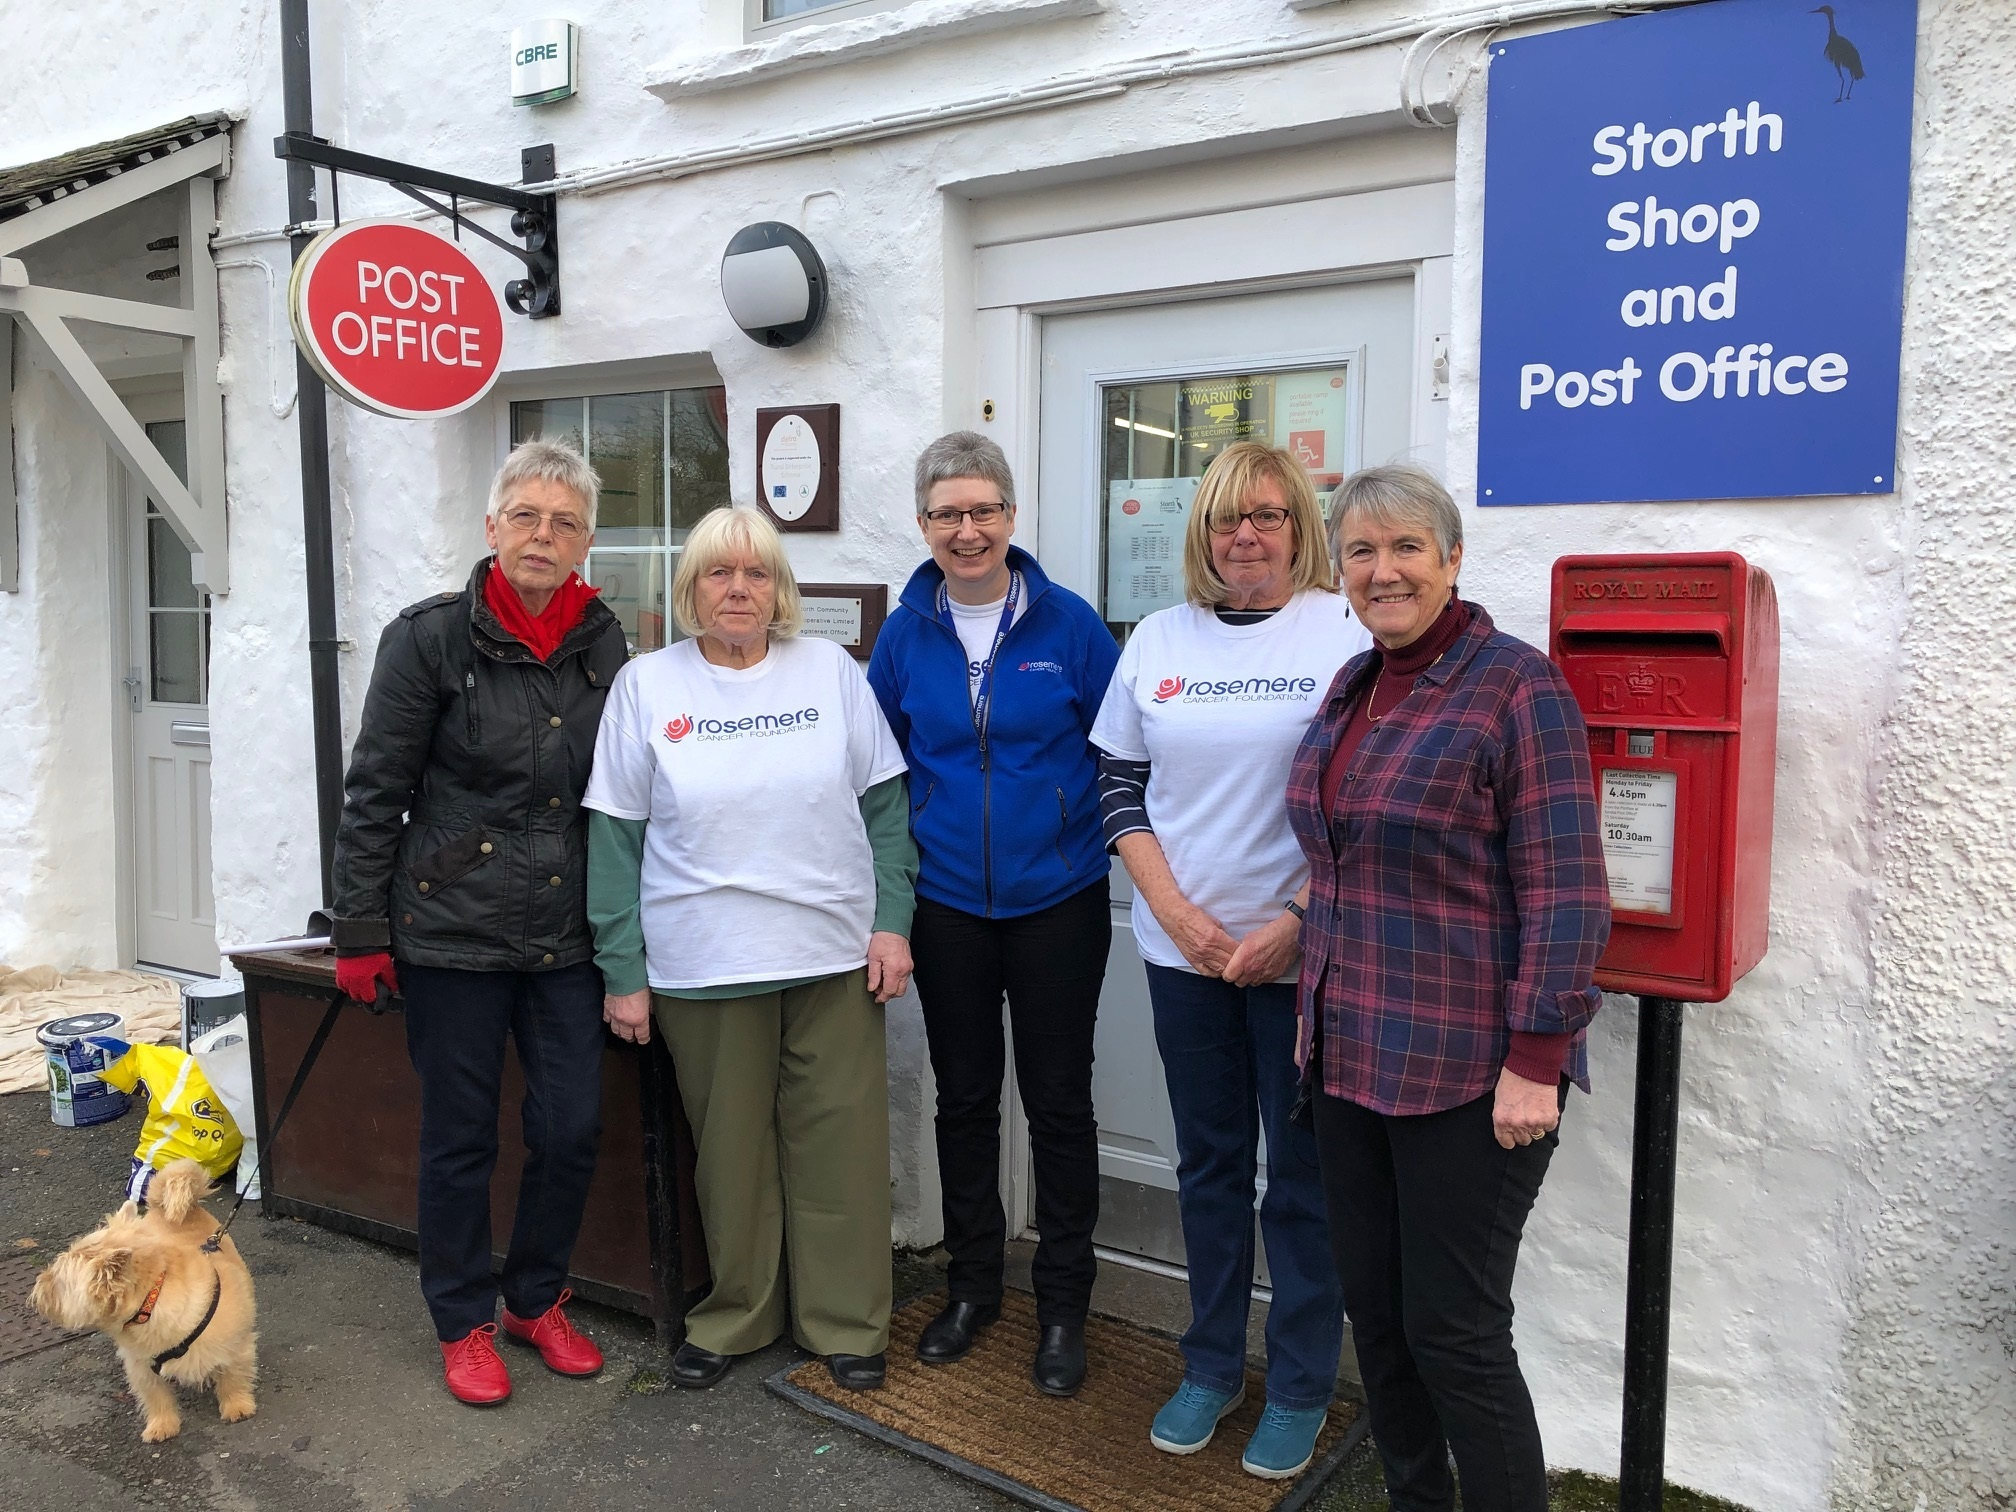 Rosemere Cancer Foundation charity thanks kind-hearted Storth village shop and post office customers - The Westmorland Gazette